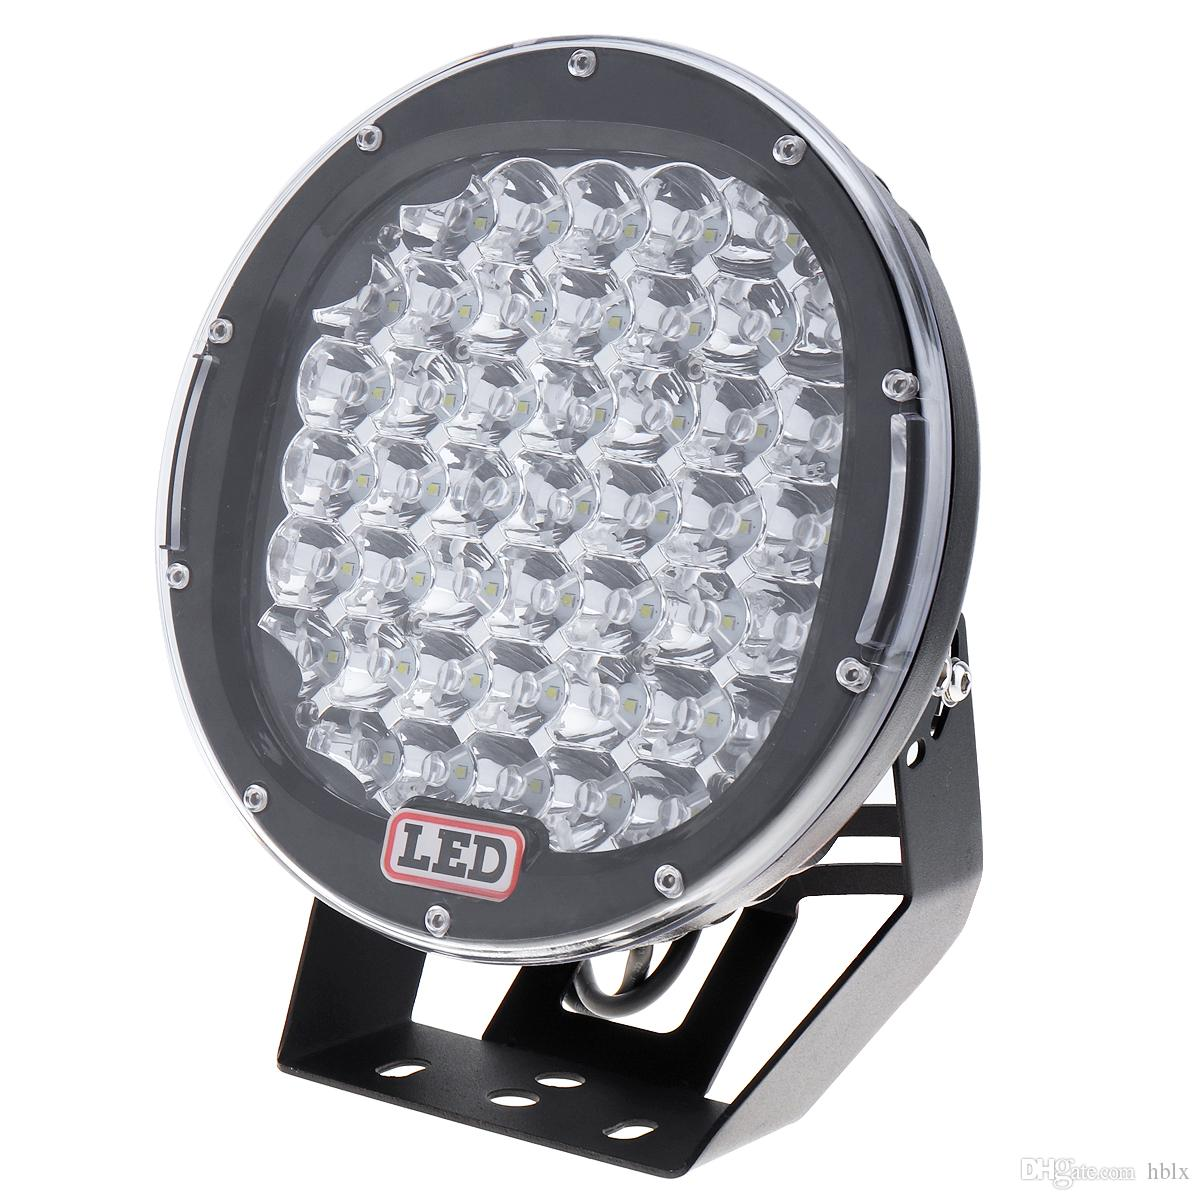 9 Inch Rounded 225W 45x CREE LED Car Worklight Spot / Flood Light Vehicle Driving Lights for Offroad SUV ATV Truck Boat CLT_42R